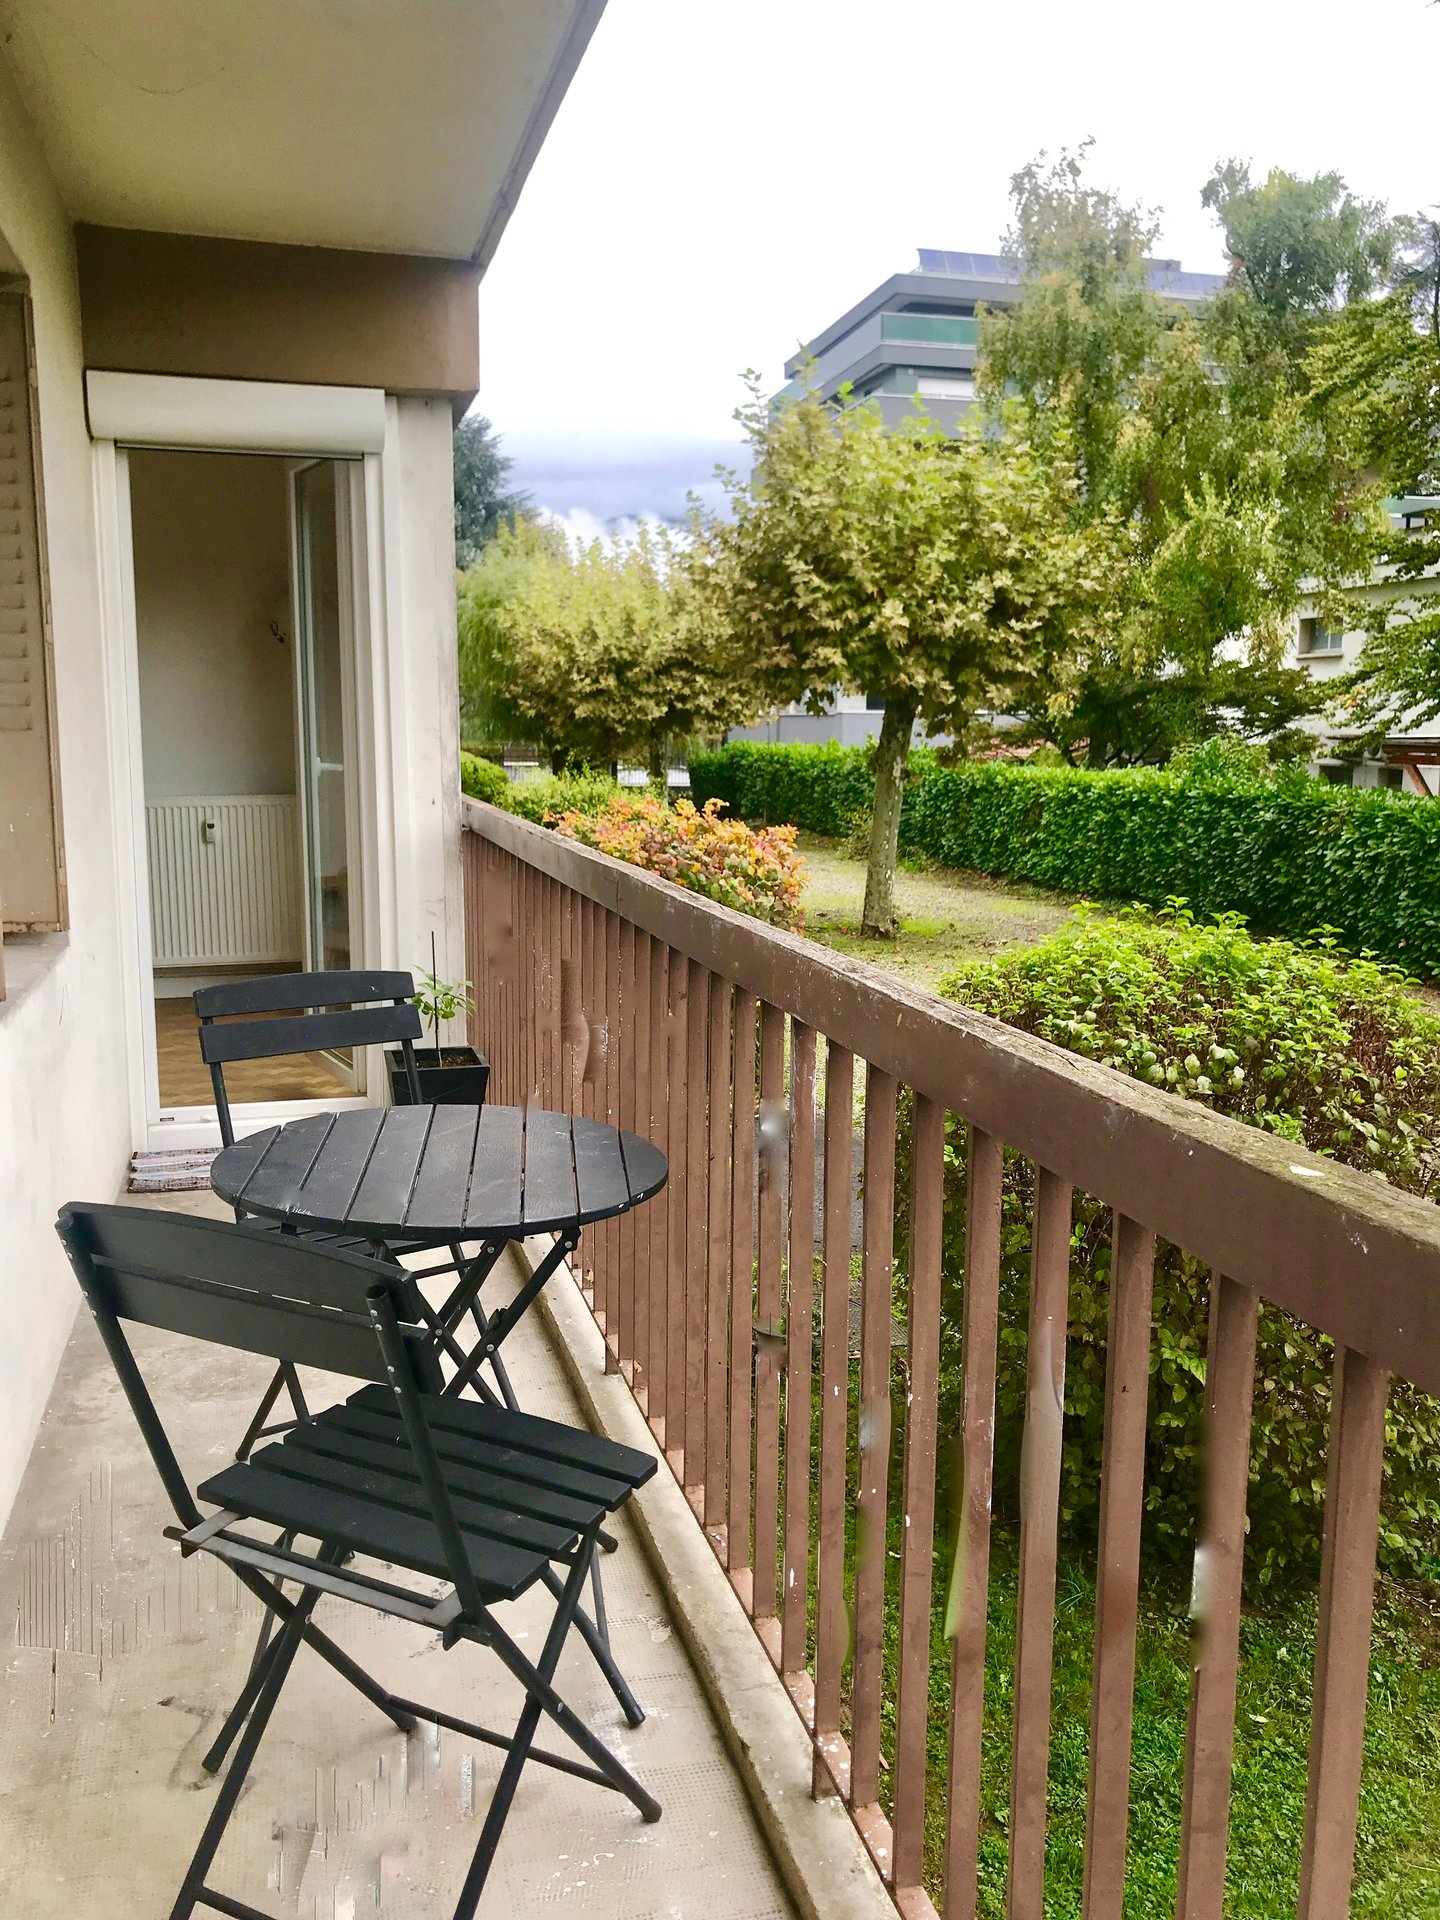 APPARTEMENT T4 - ANNECY - Bel emplacement